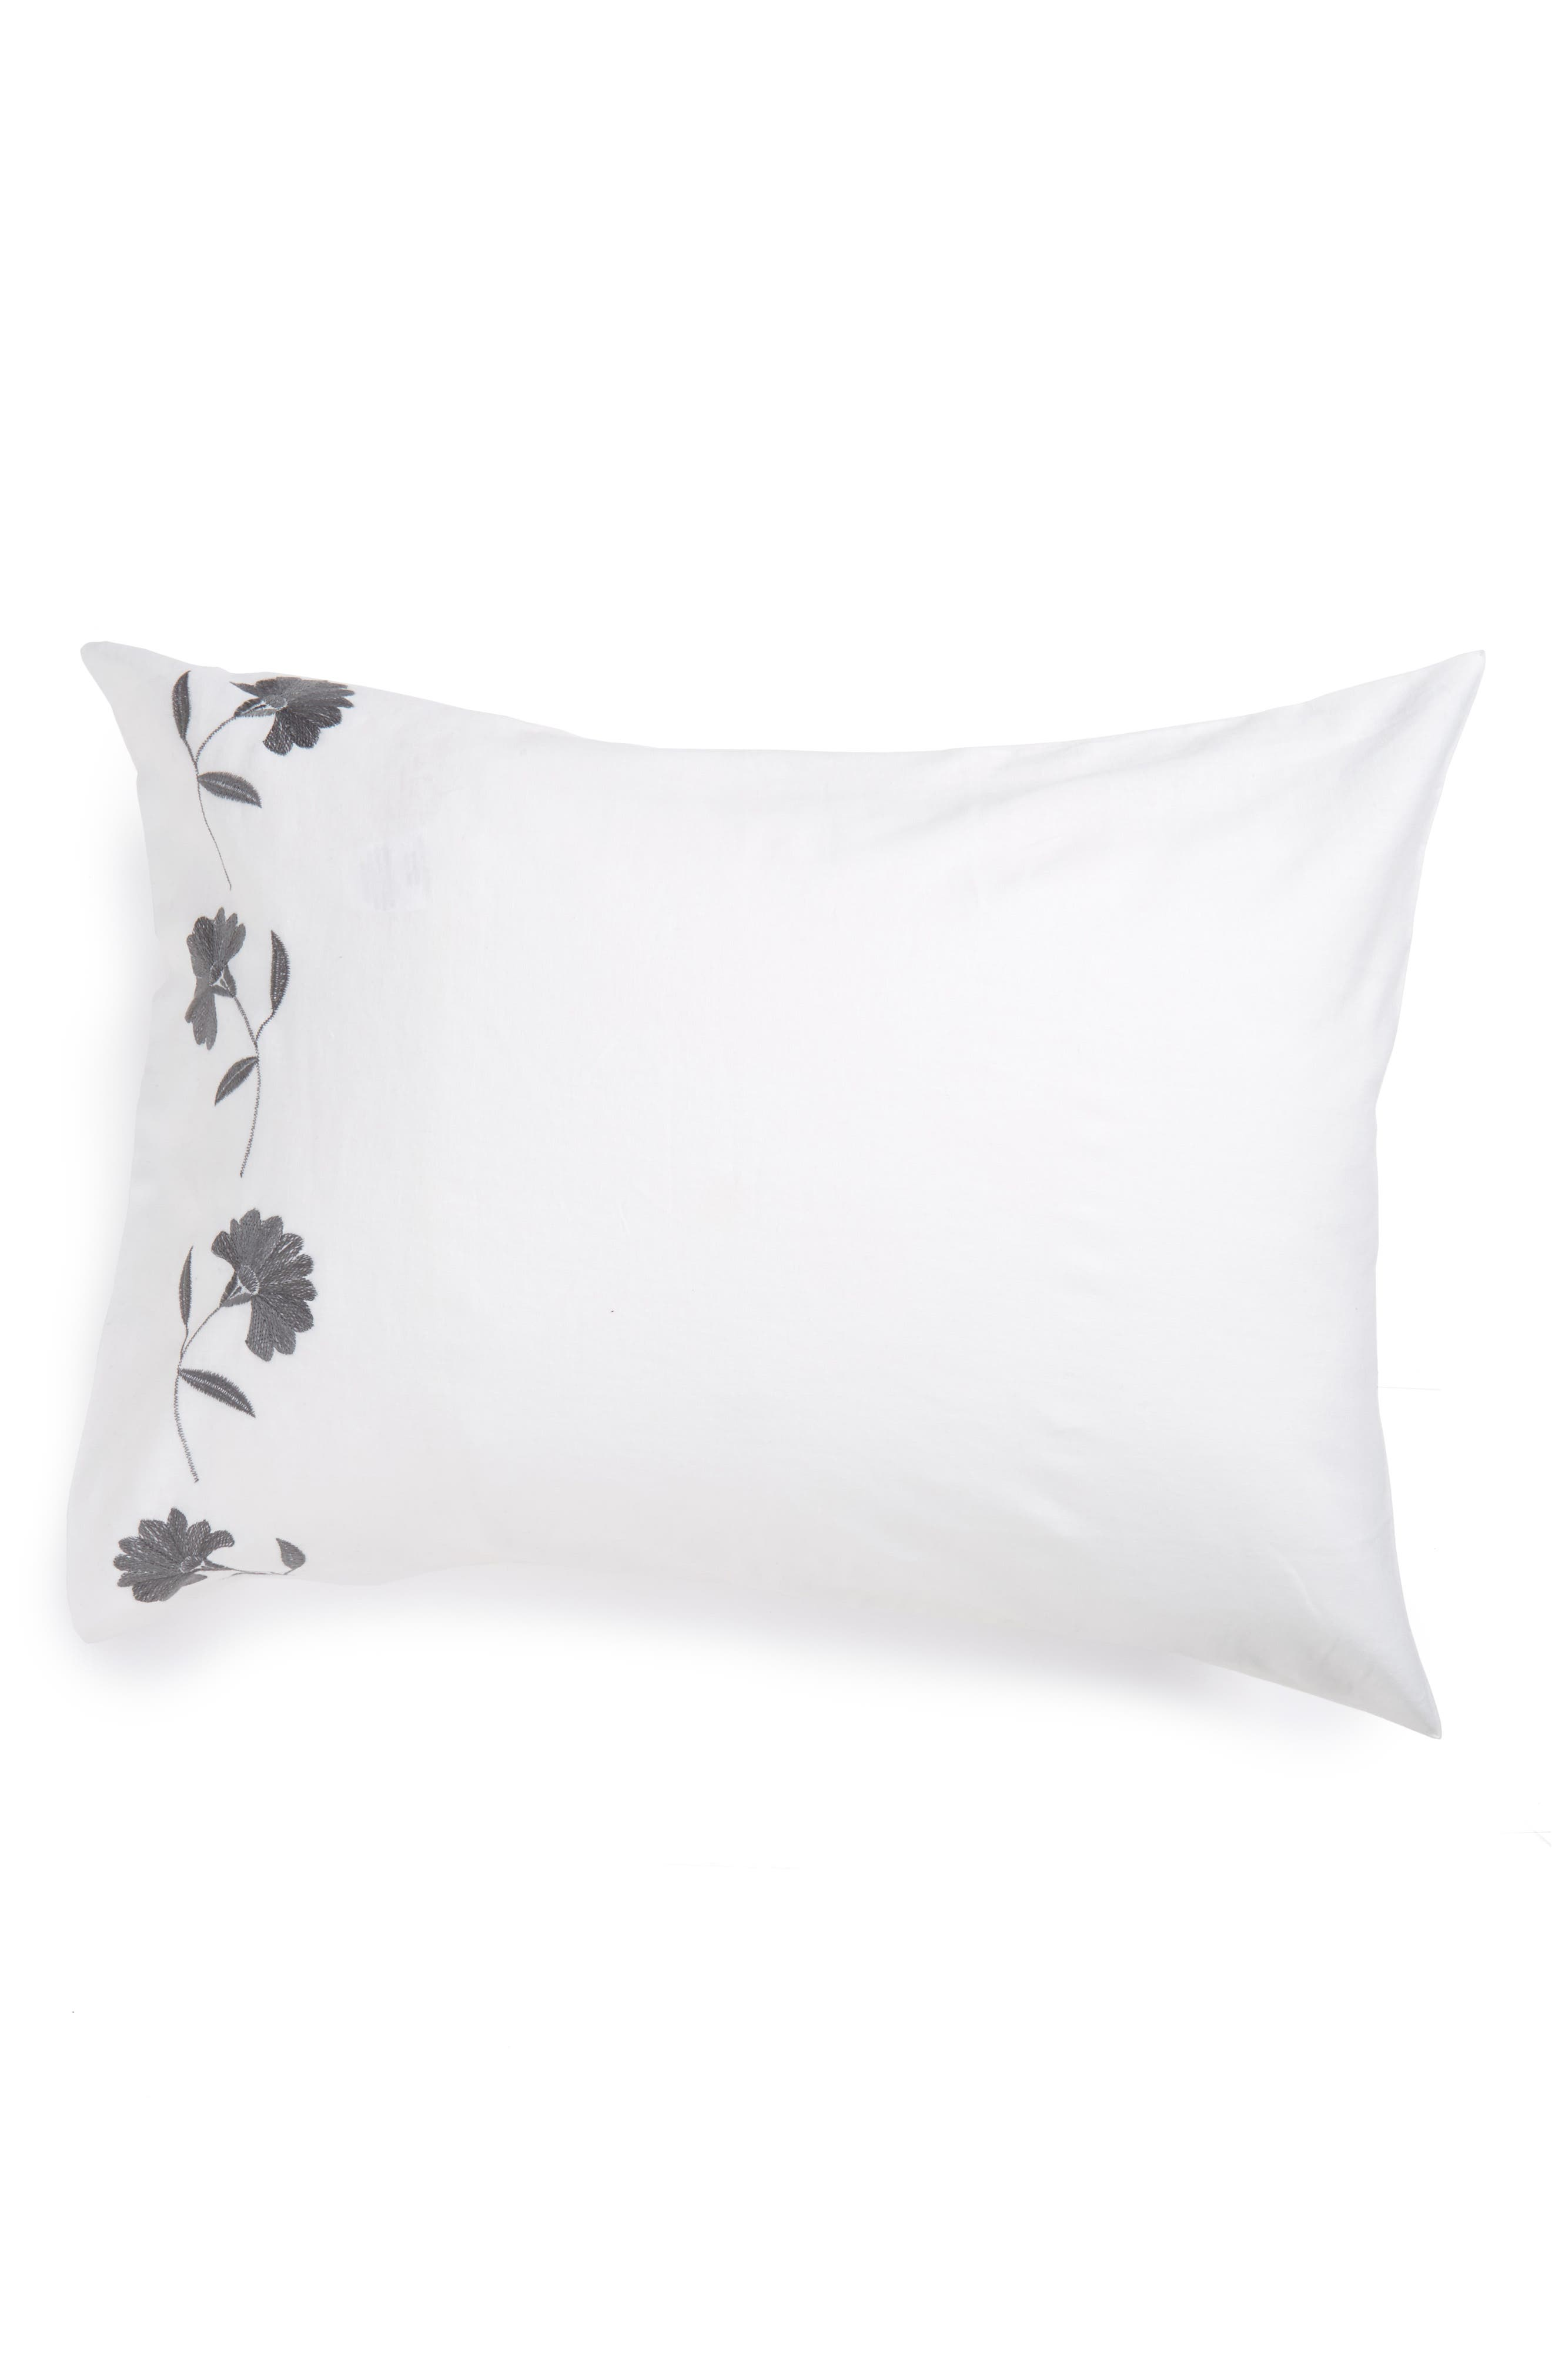 Alternate Image 1 Selected - kate spade new york lacey daisy sham